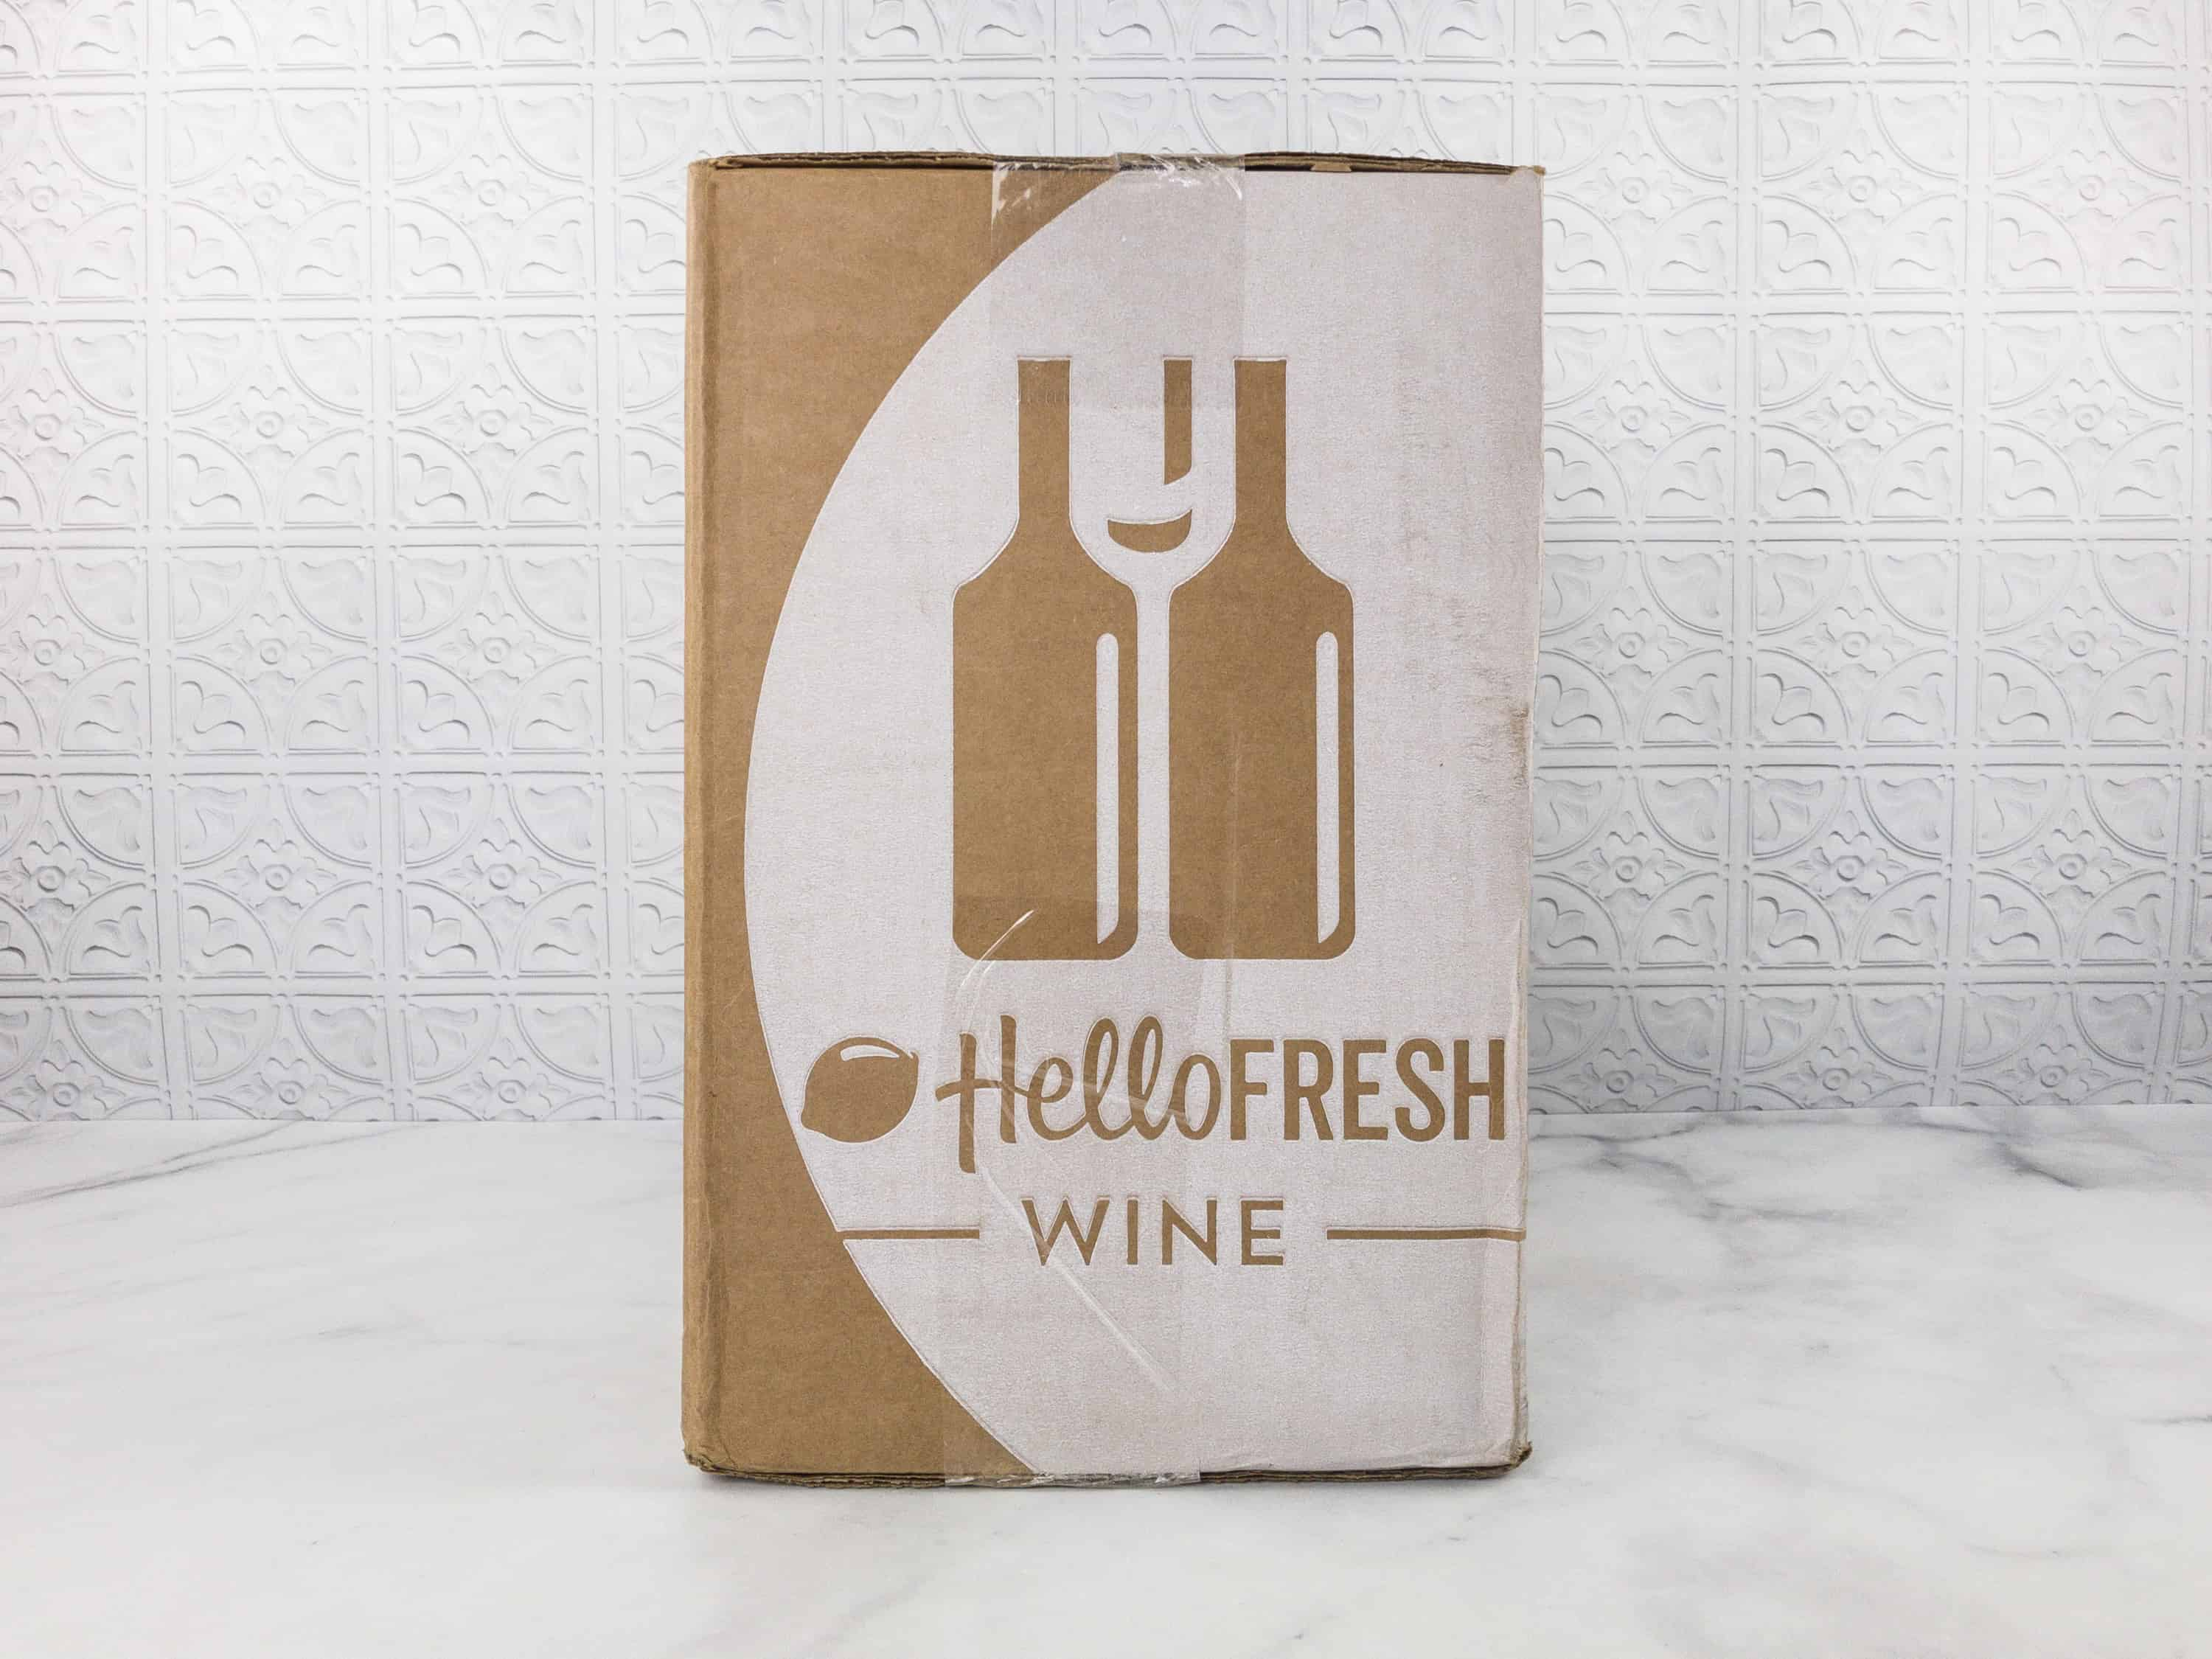 Hello Fresh Wine Is A Monthly Subscription To Premium Wines